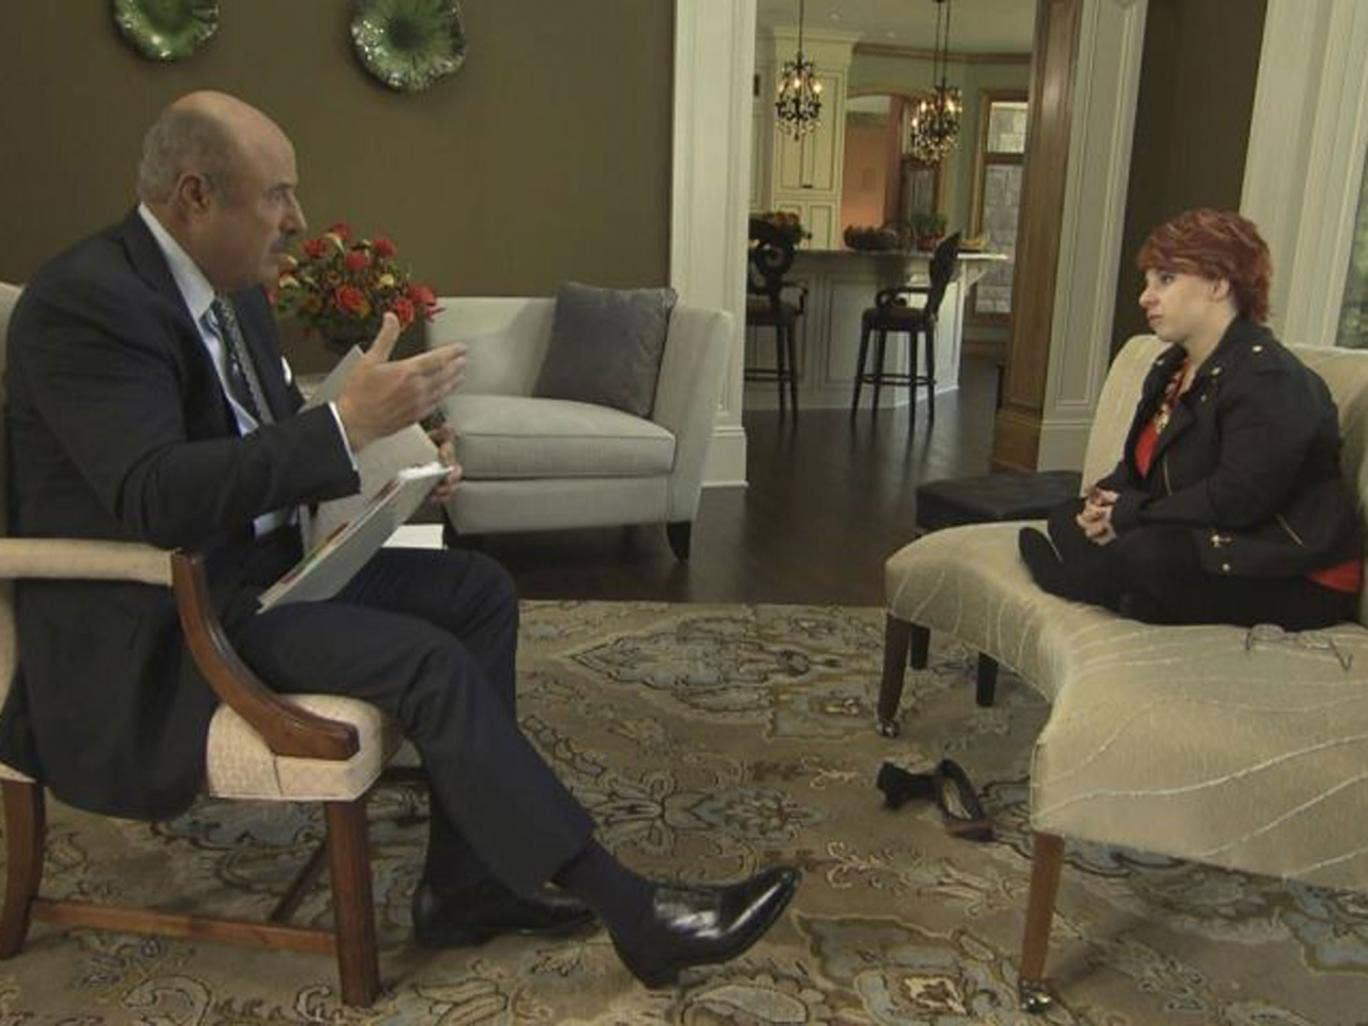 Michelle Knight, the first of Ariel Castro's Cleveland kidnapping victims, is interviewed by Dr Phil McGraw